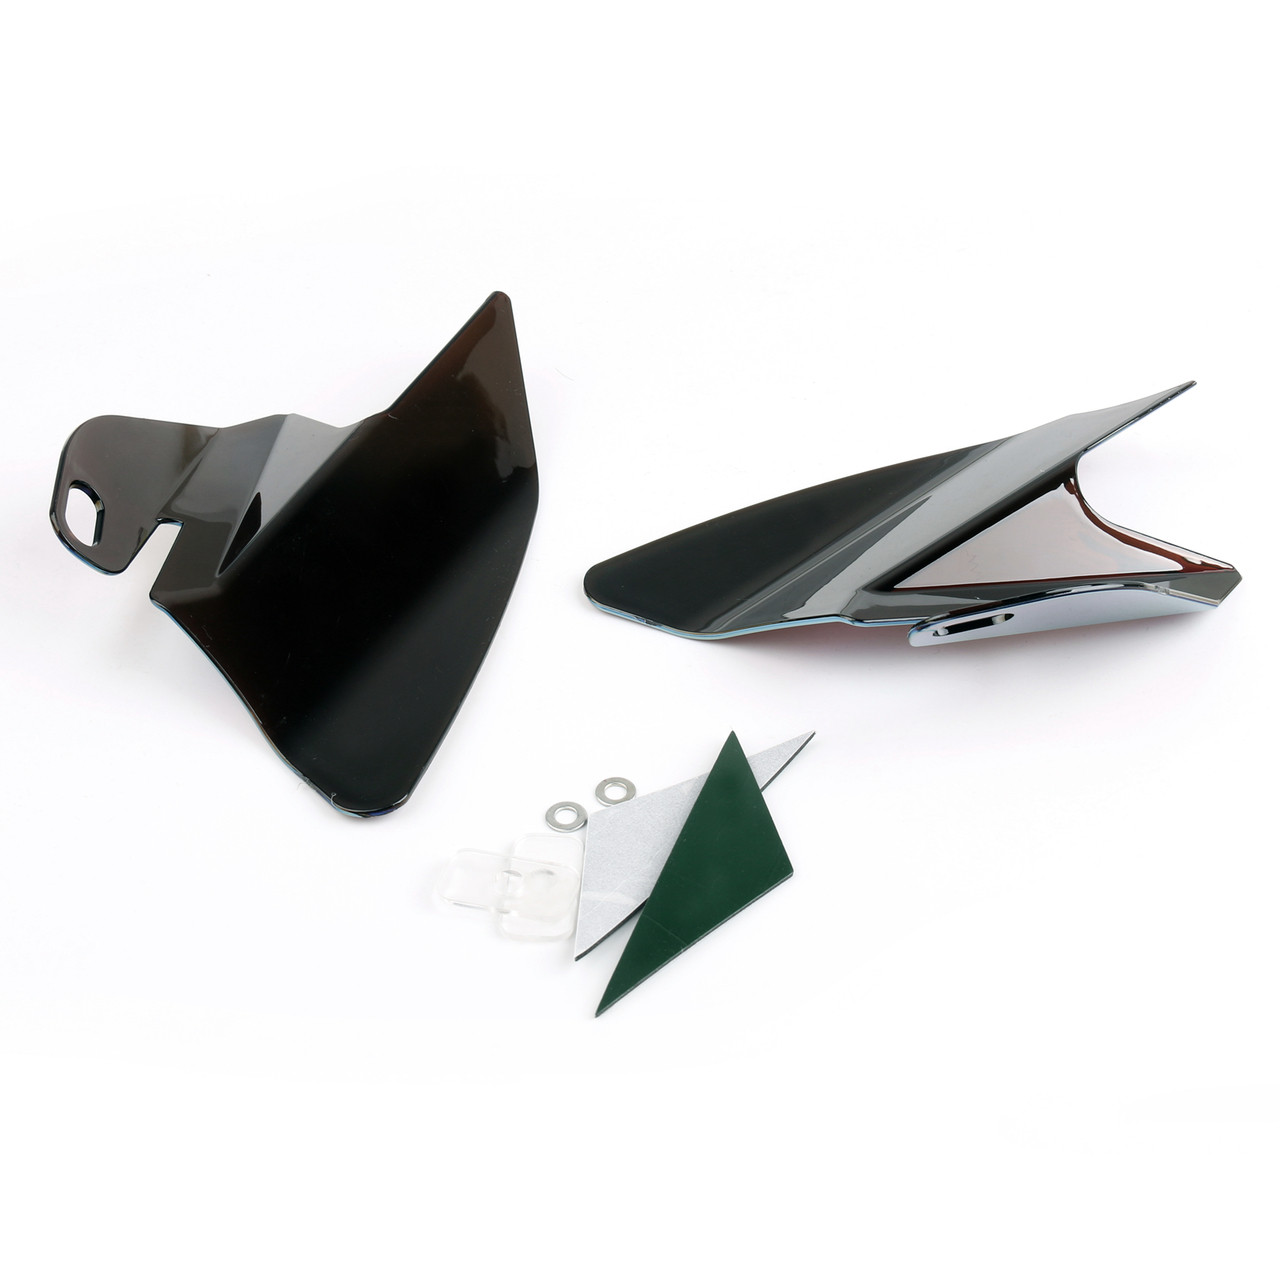 Seat Saddle Shield Heat Deflectors For Harley-Davidson Electra Glide Standard, Iridium (M201-001-Iridium)